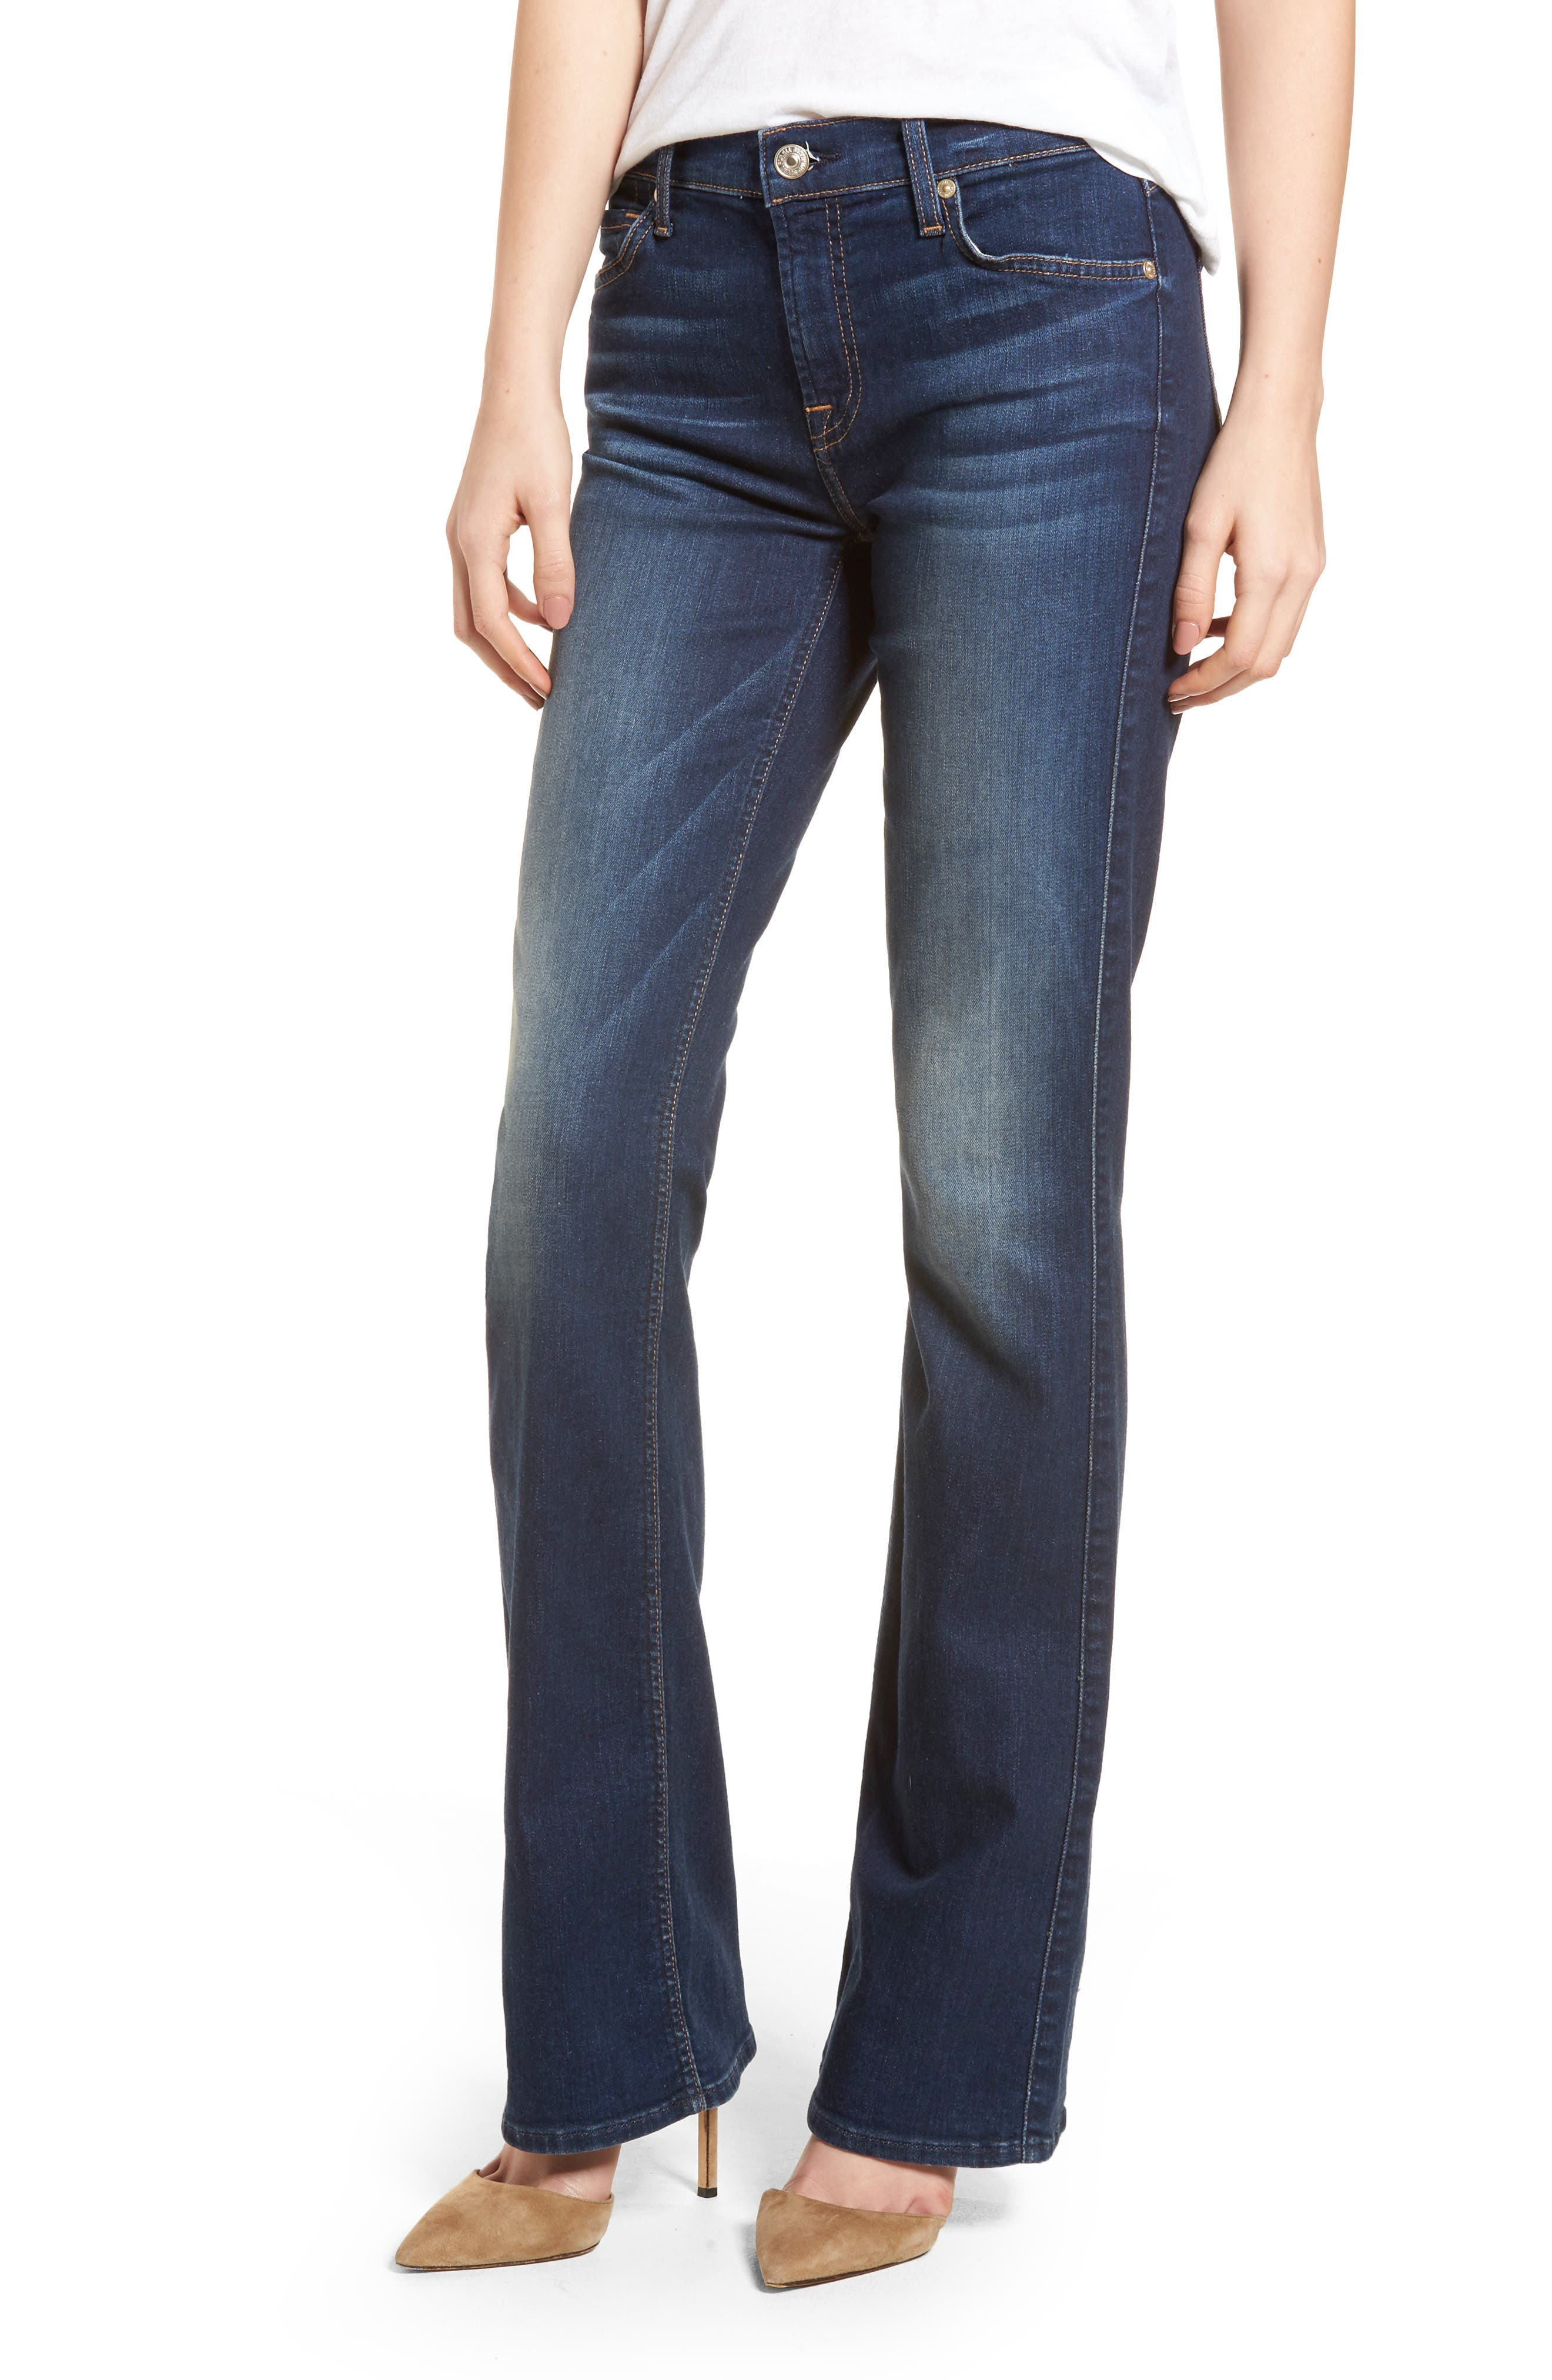 Women's 7 For All Mankind B(Air) Iconic Bootcut Jeans